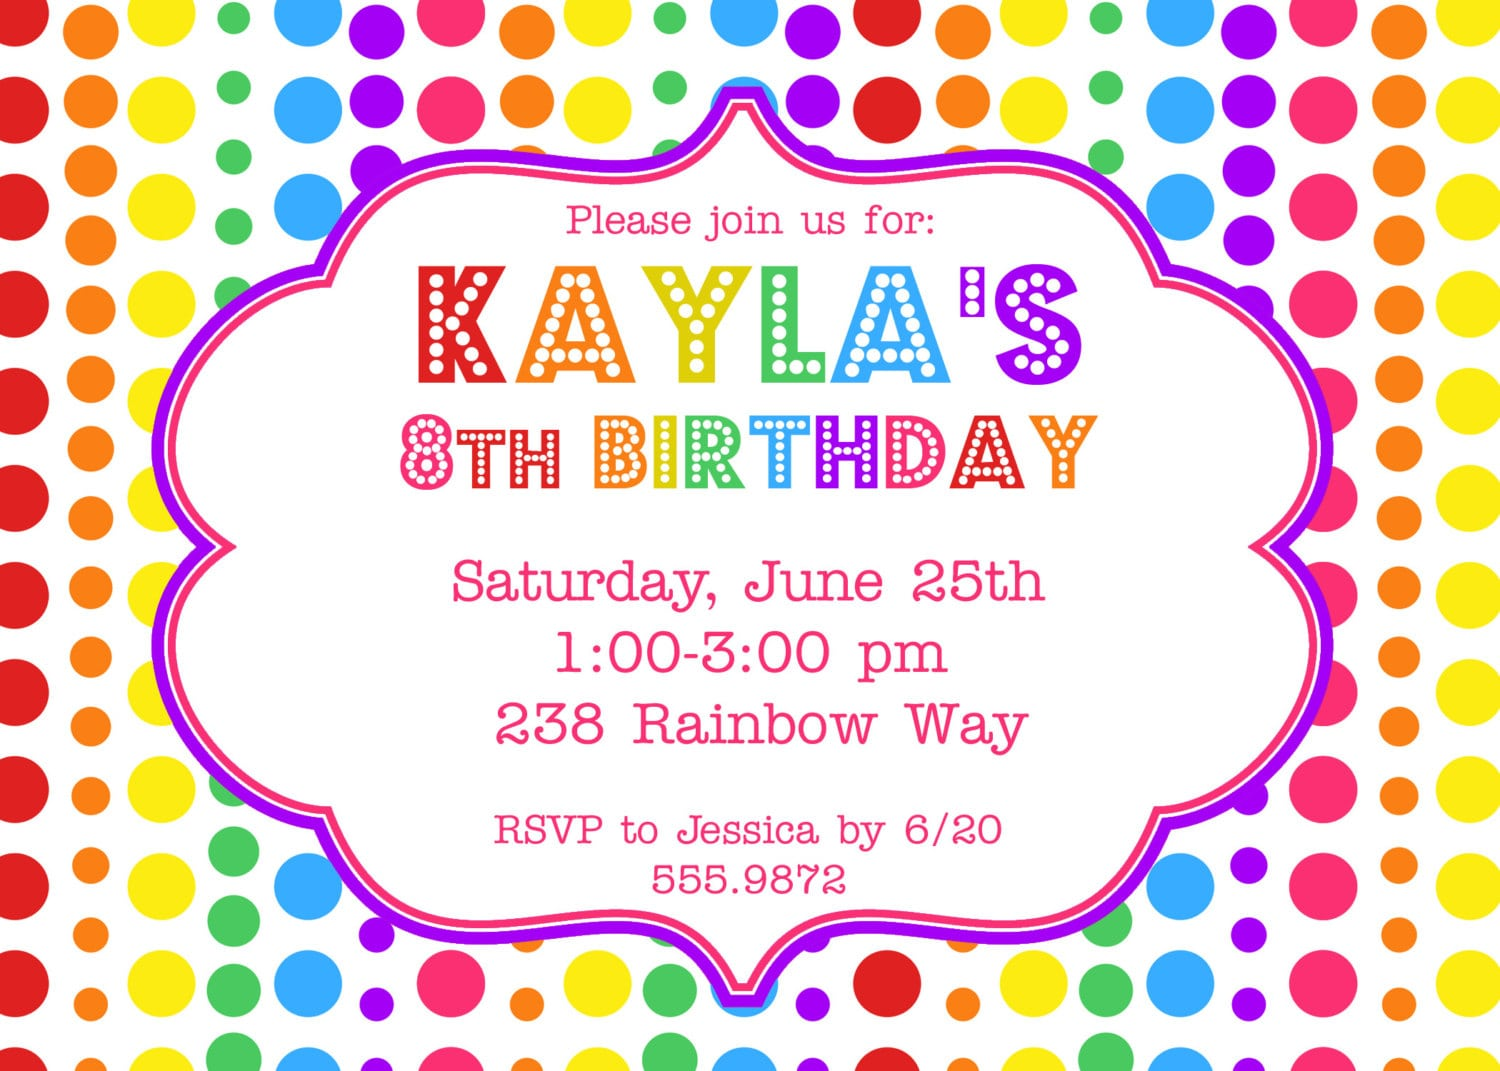 Cute Birthday Party Invitations Amazing Cute Birthday Party